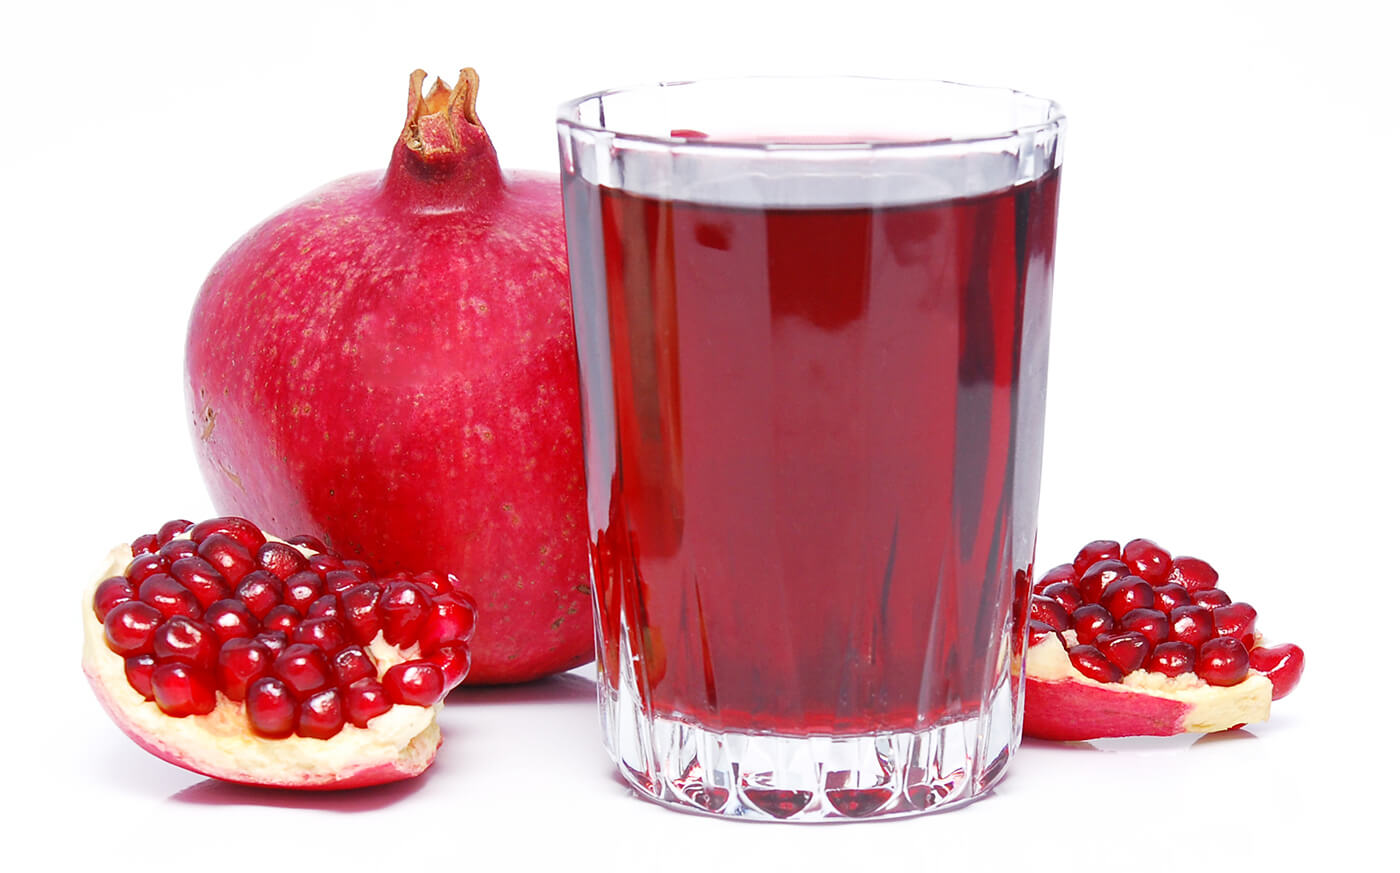 Pomegranate Juice Supplements Reviewed by ConsumerLab